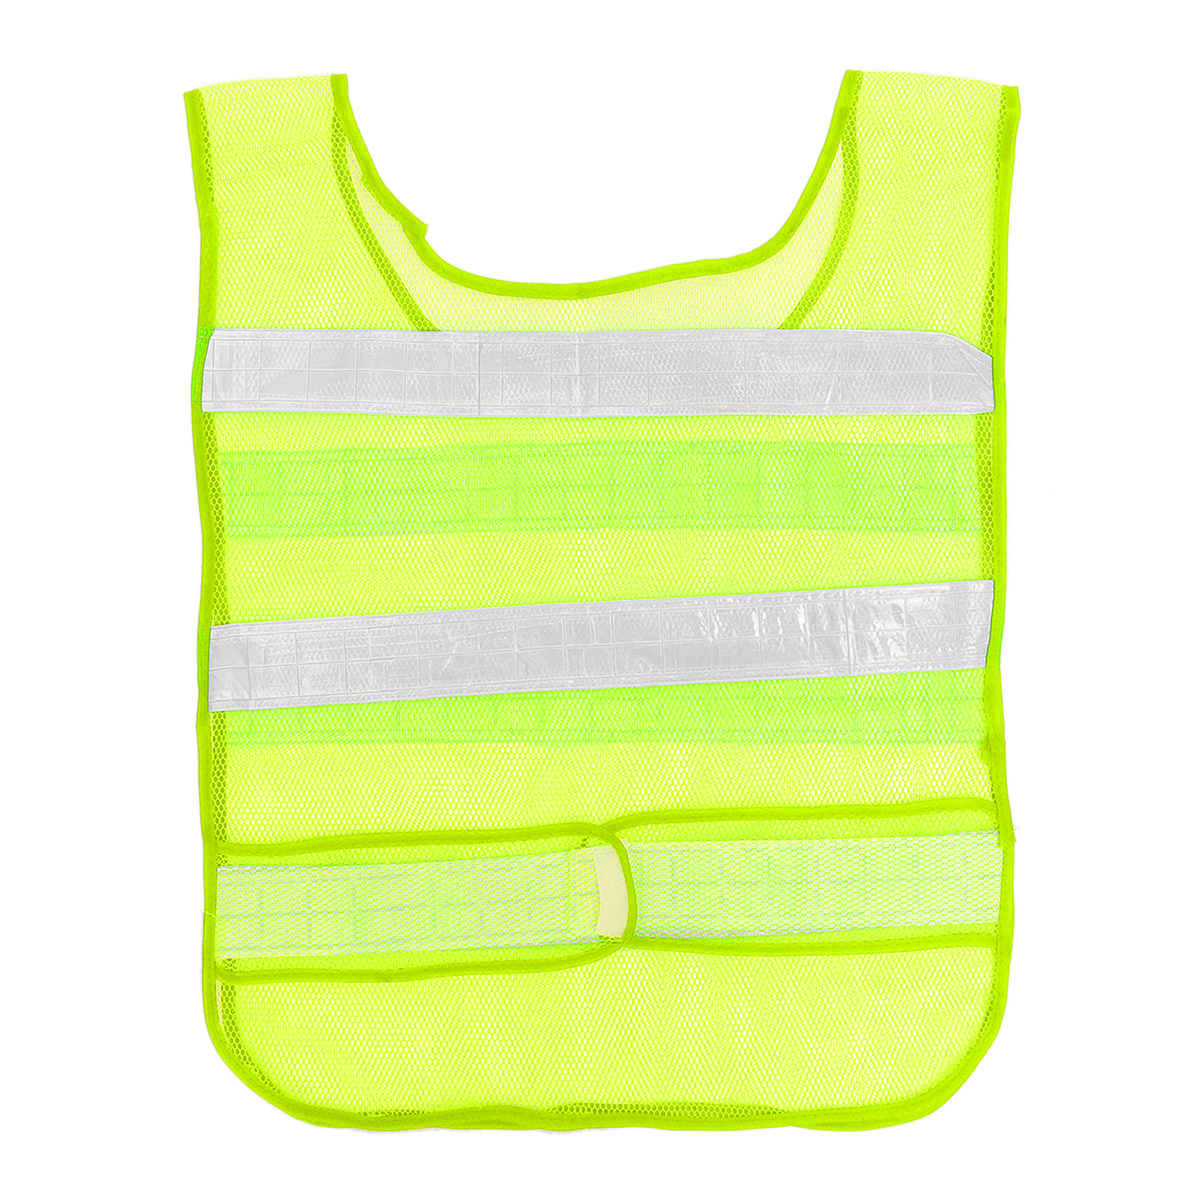 Outdoor High-quality High Visibility Reflective Vest Working Clothes Motorcycle Cycling Sports Reflective Safety Clothing